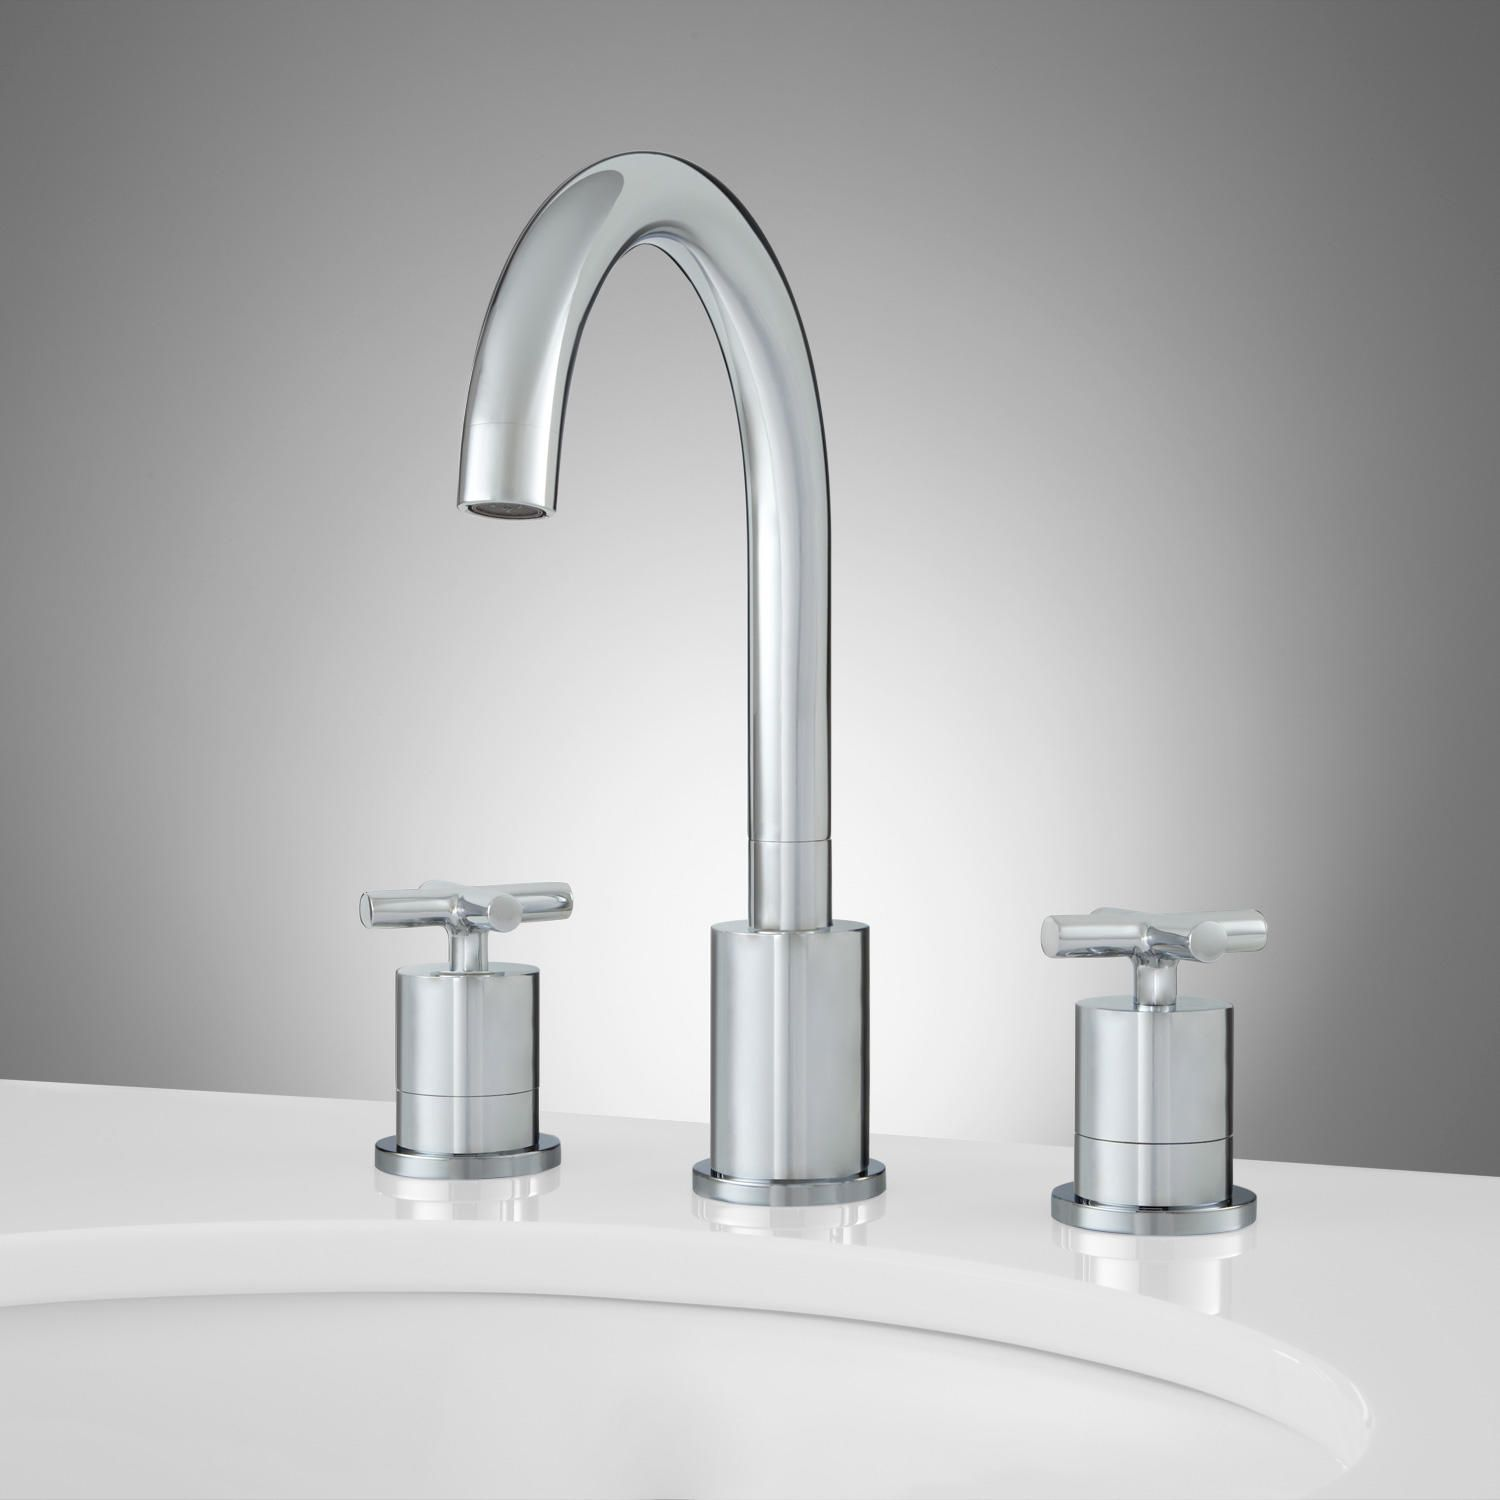 faucets best awesome square appealing and sink wide brushed for mesmerizing design your impressive silver faucet ideas bathroom modern outstanding attractive dazzling nickel lavatory with bath chrome shower